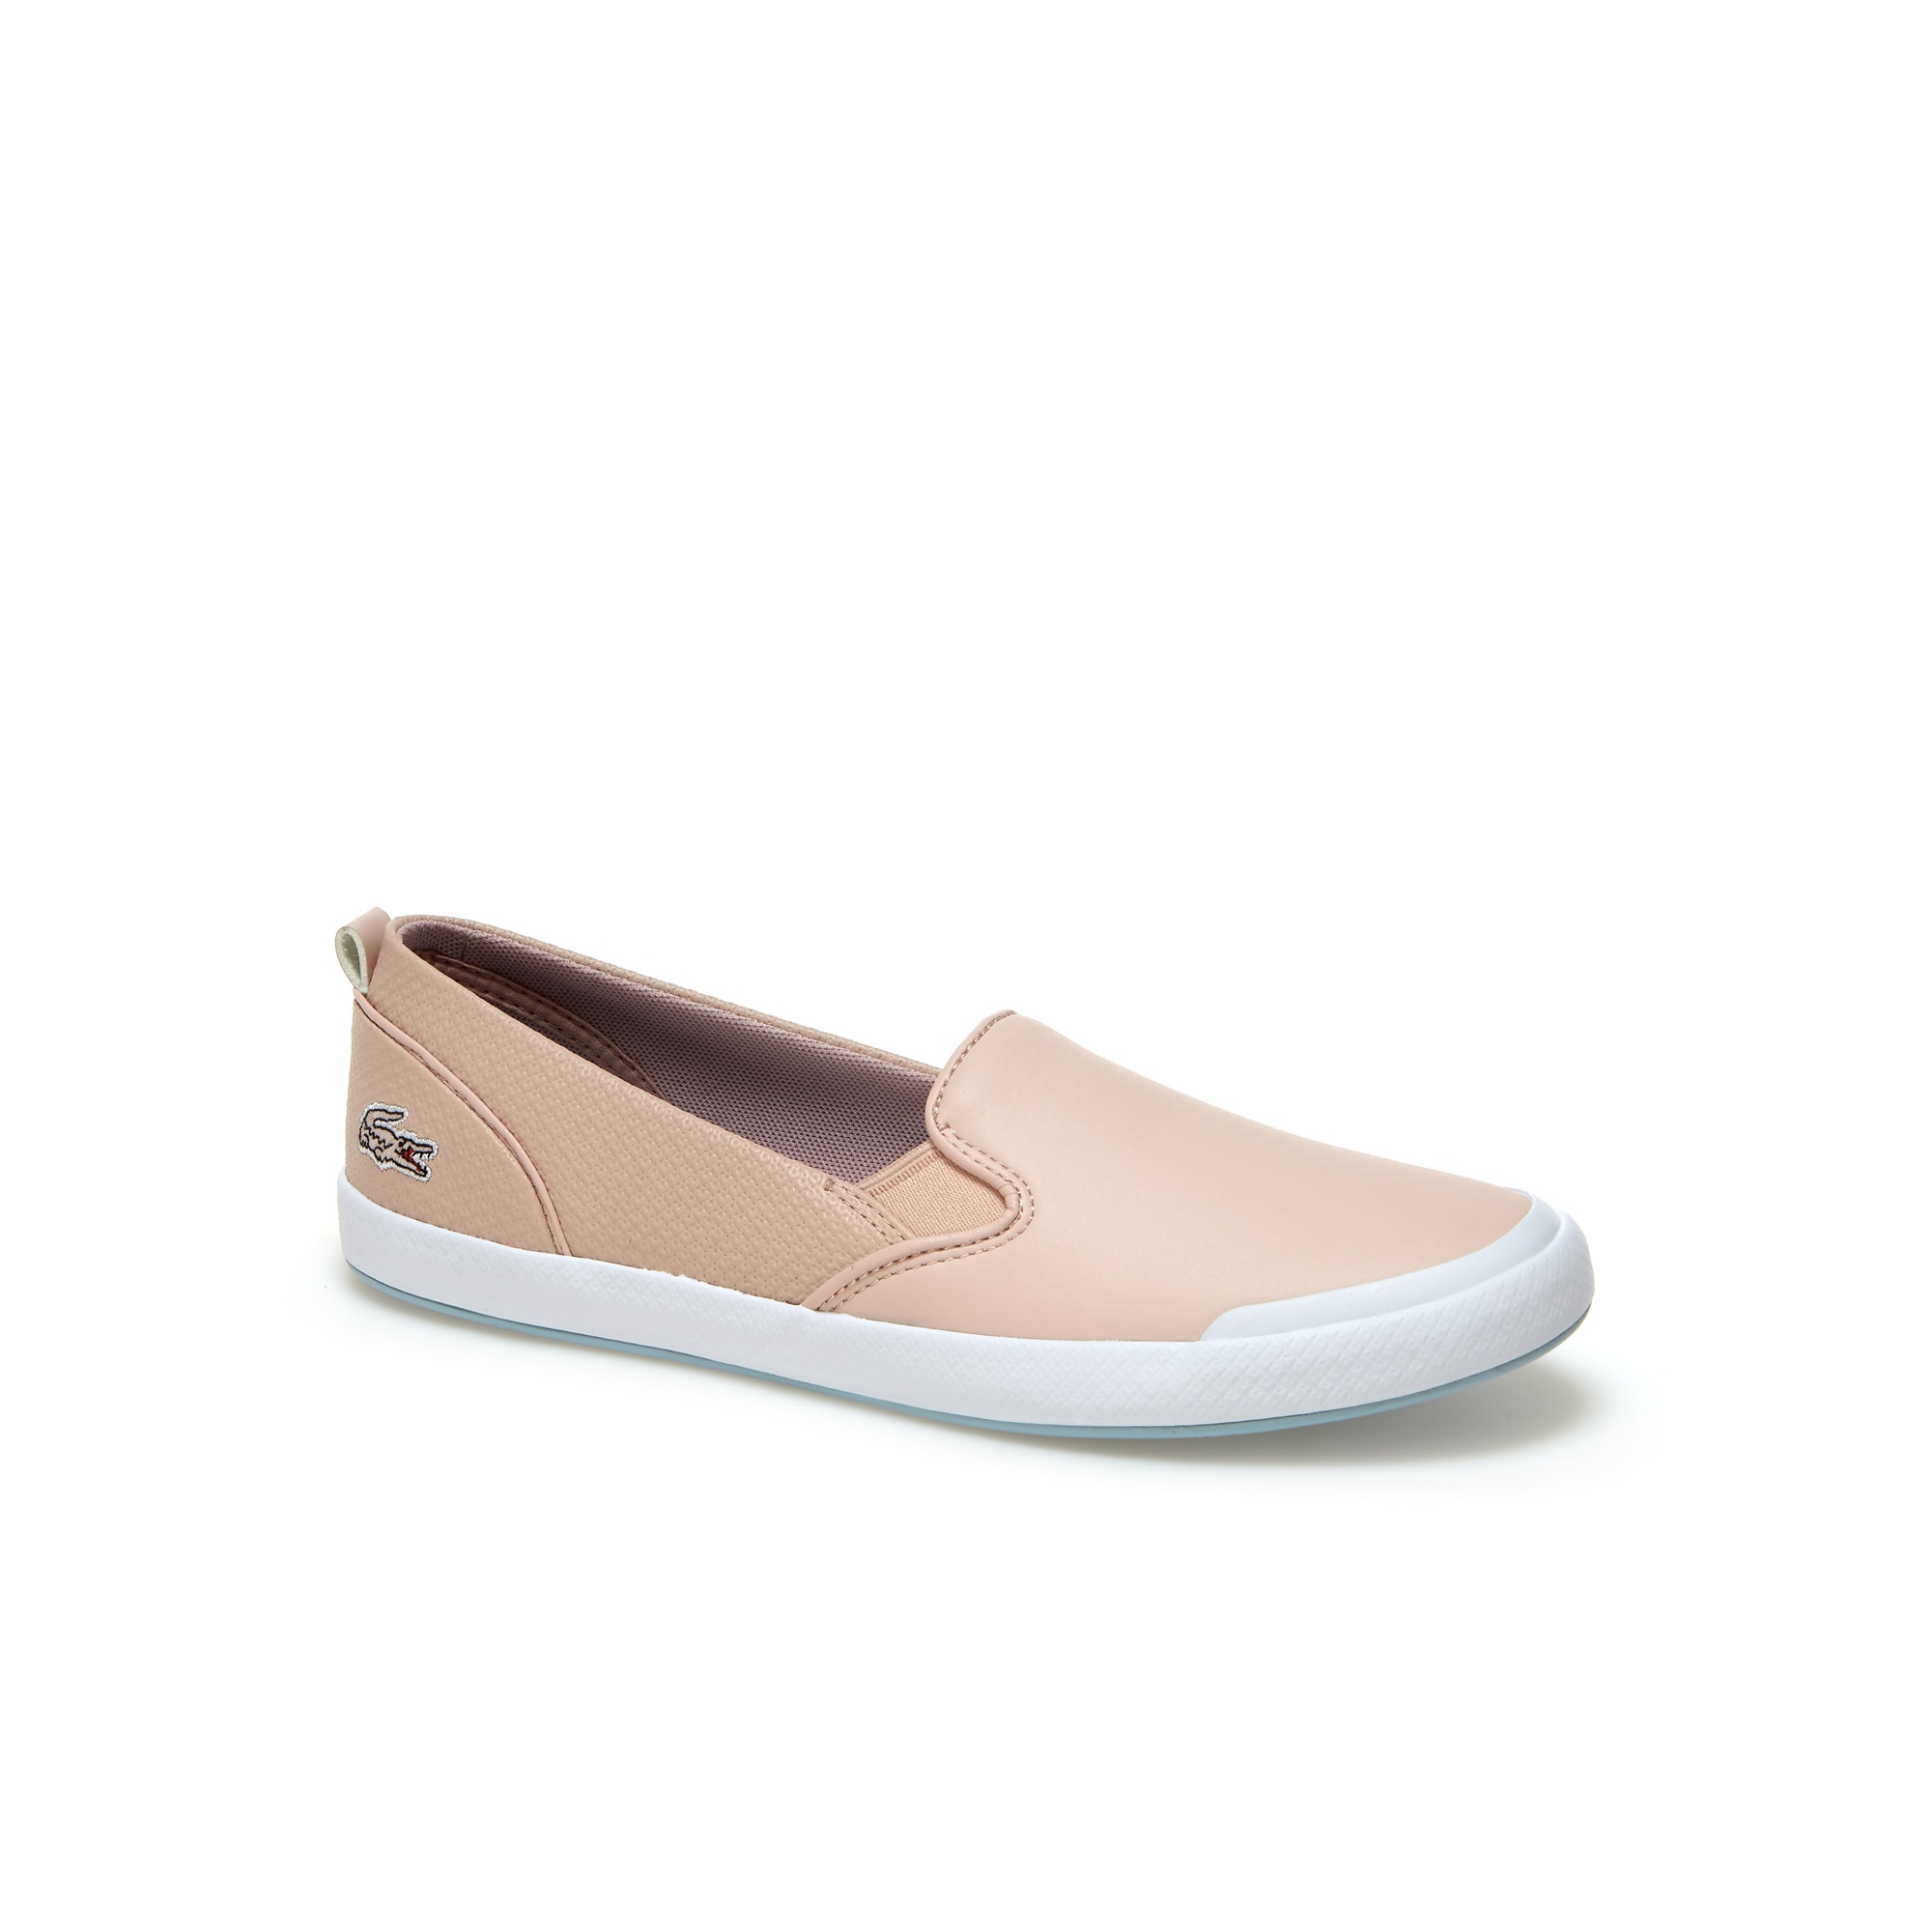 Women's Lancelle Slip On Leather Slip-ons